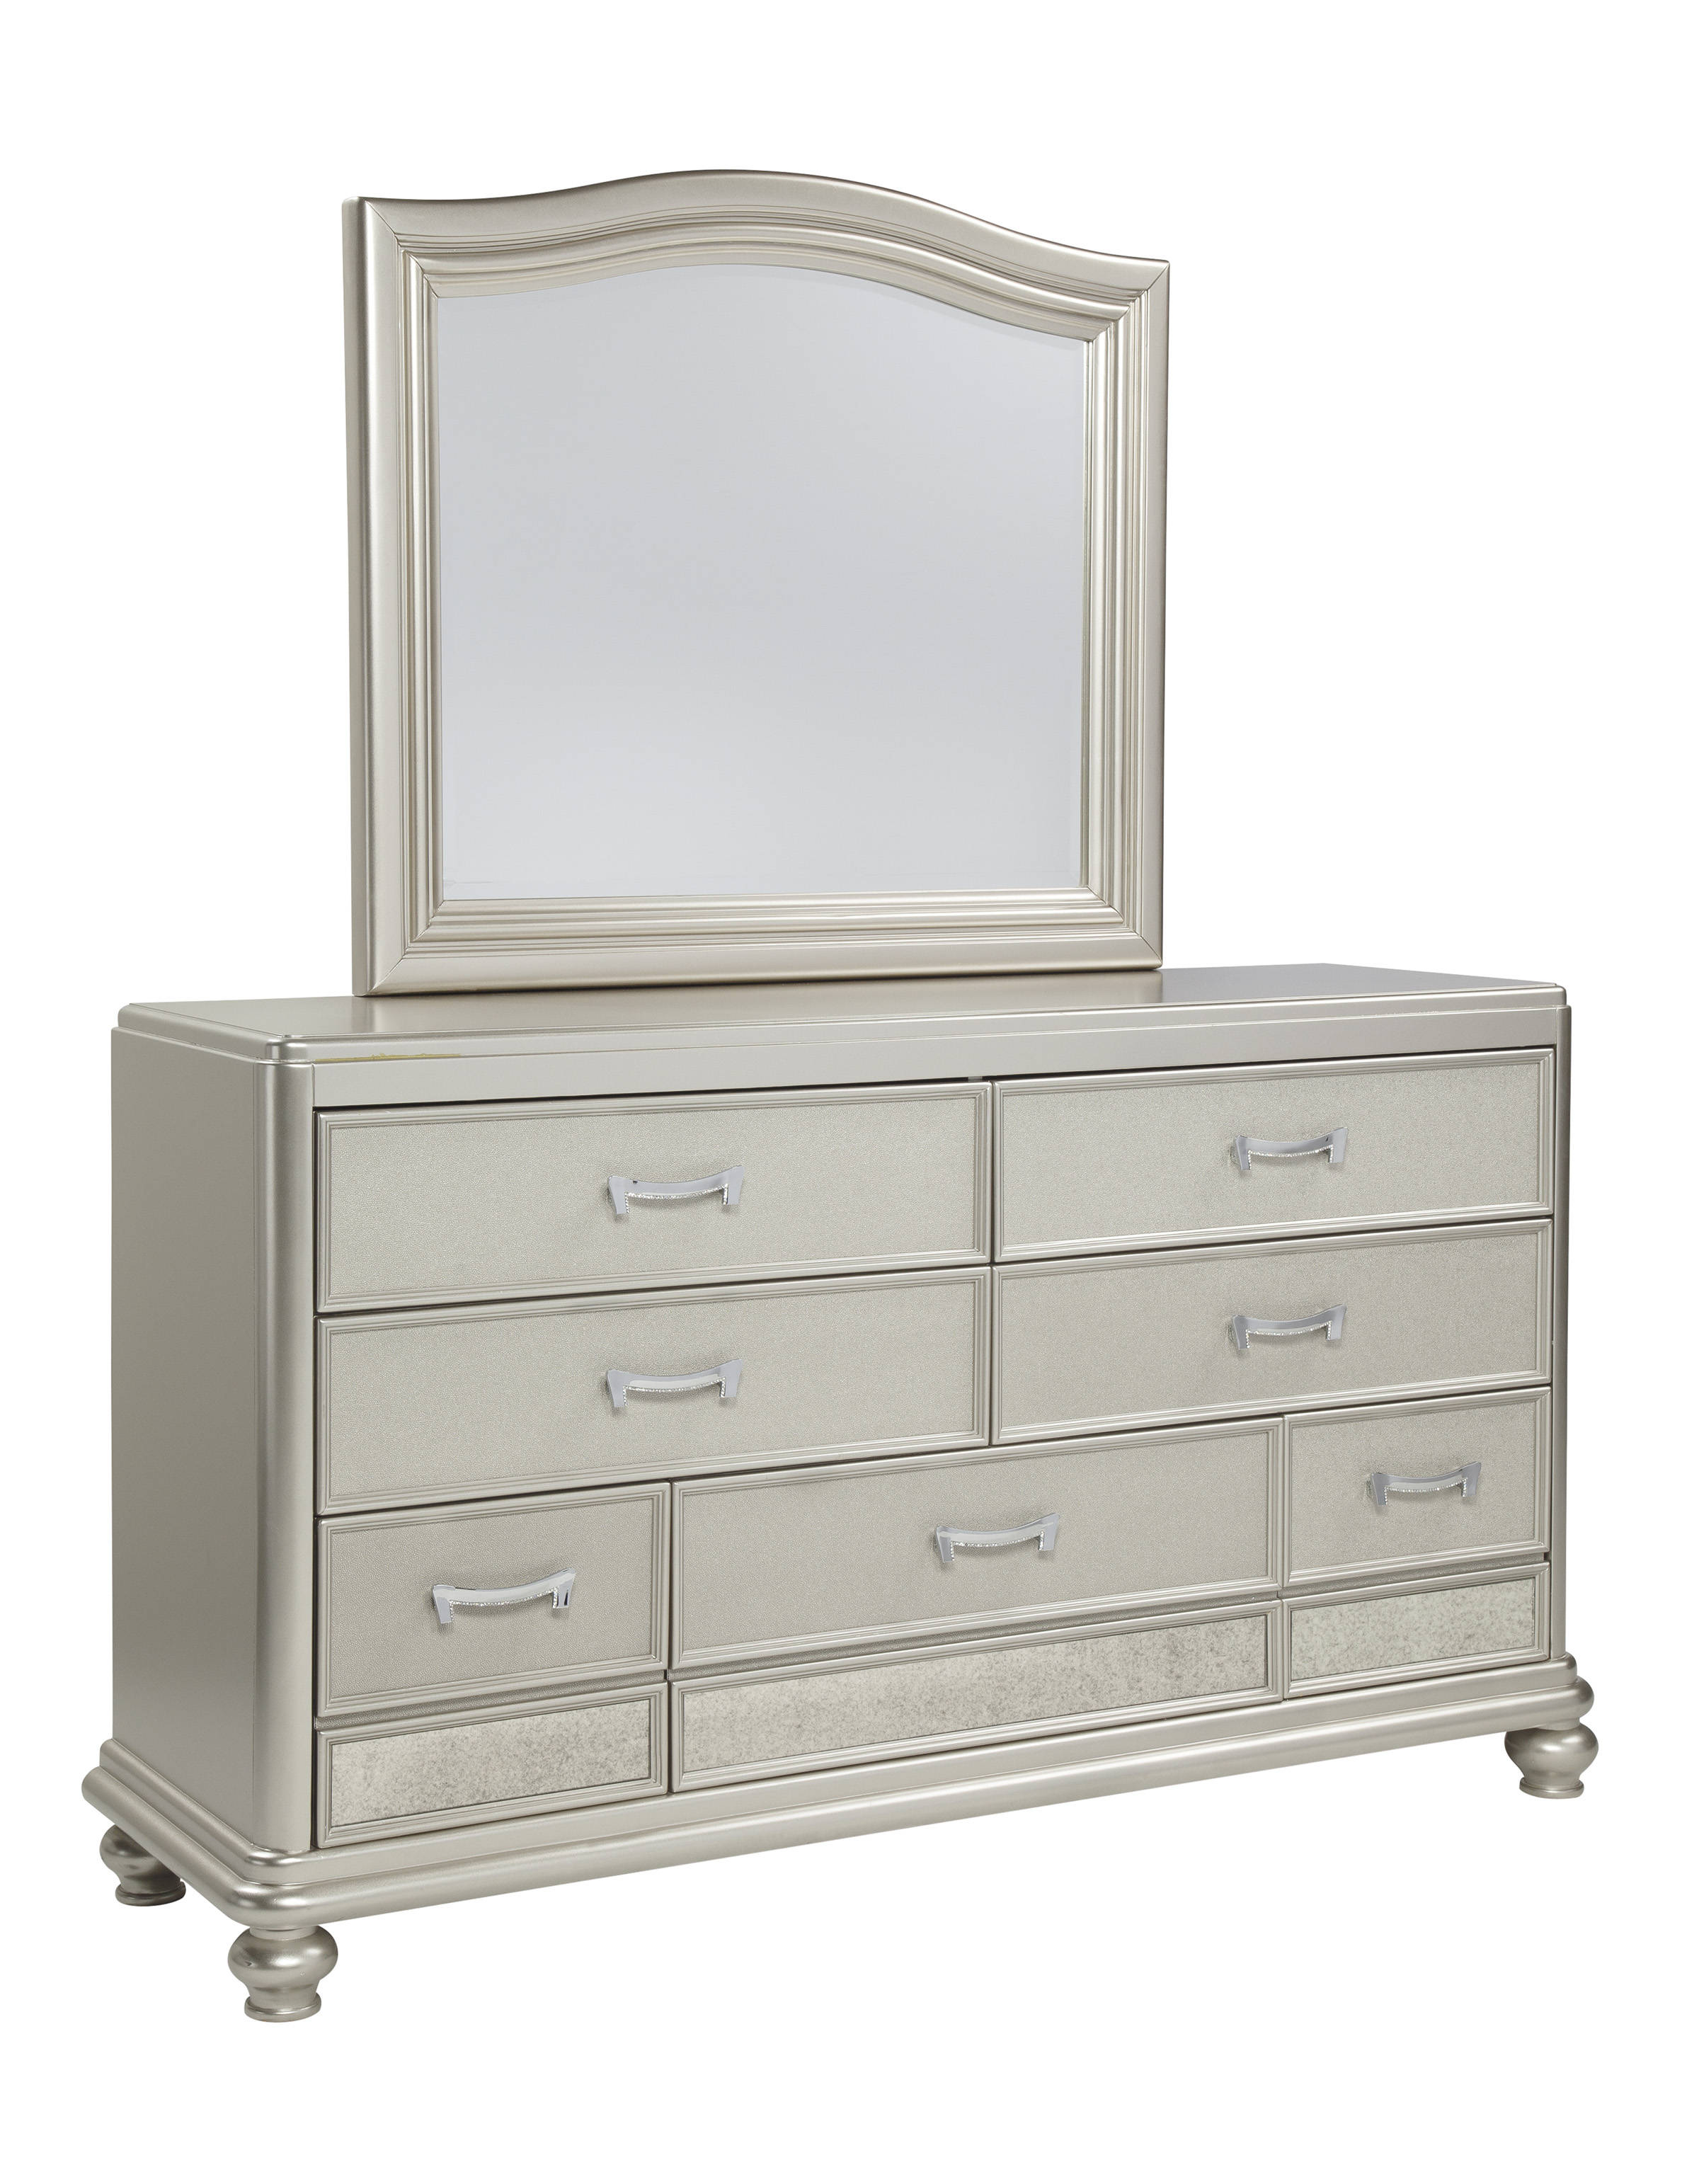 Ashley Furniture Coralayne Silver Dresser And Mirror The Classy Home